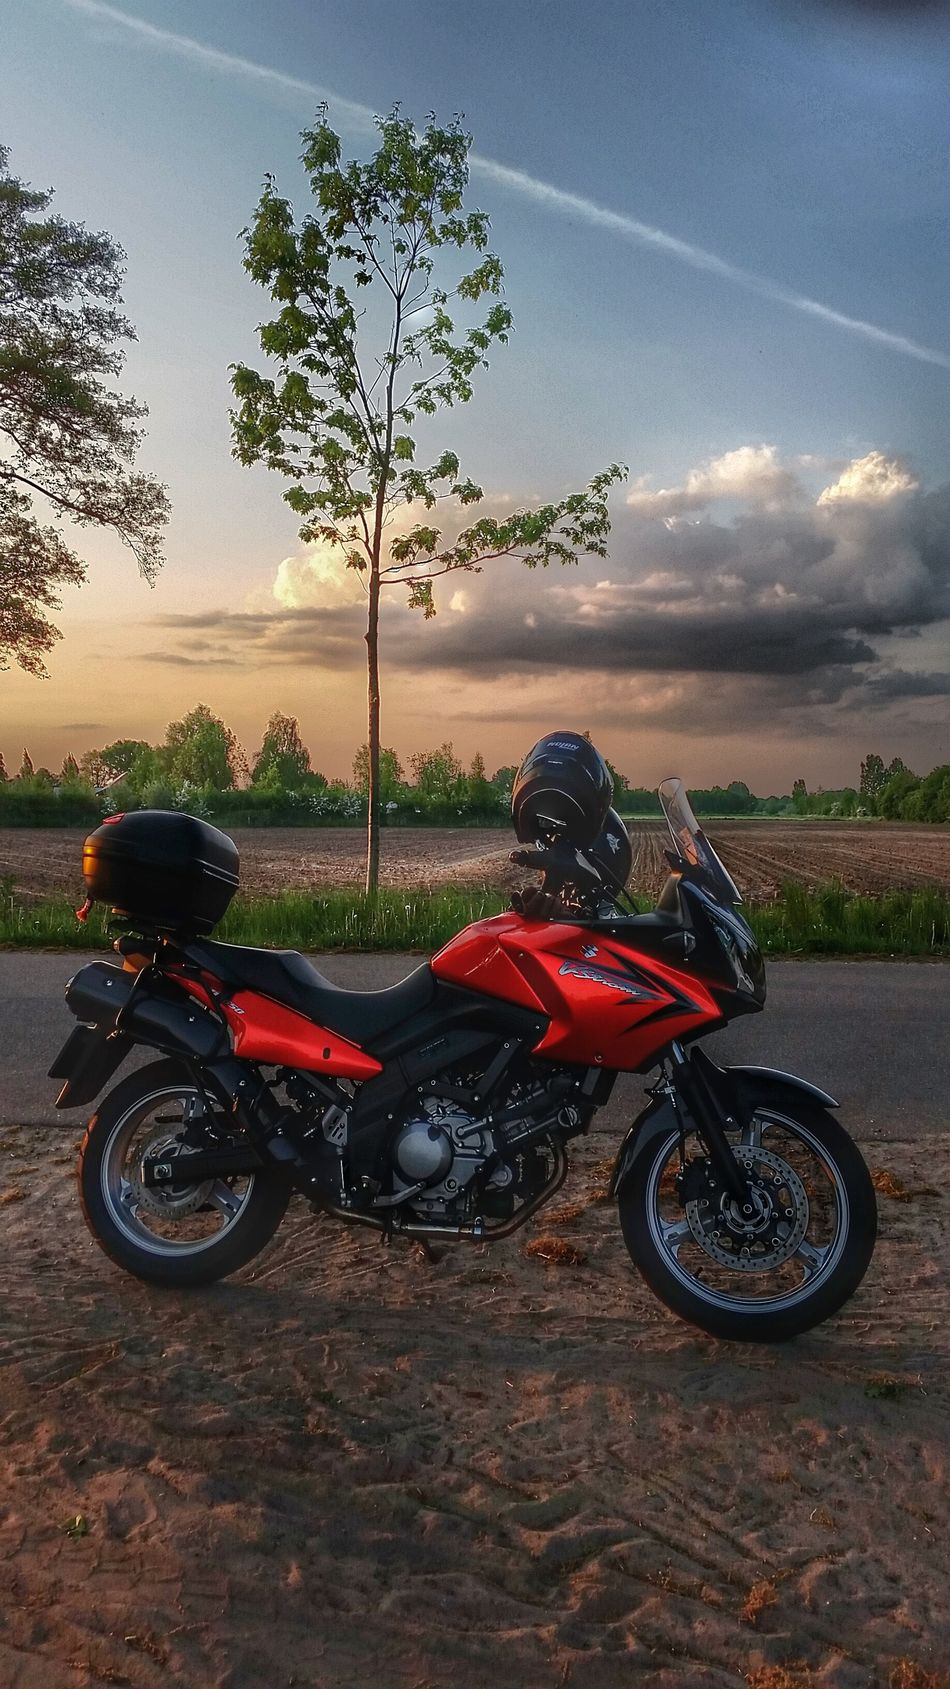 Had a wonderful eveningtrip with my gorgeous orange V-strom!❤ Suzuki Dl650 VStrom V-Strom Tourmachine Check This Out Enjoying Life Relaxing Eyemphotography EyeEm Best Shots EyeEmBestPics Here Belongs To Me Showcase May Hdr_arts  Hdr_lovers Hdrphotography Hdr_Collection Picoftheday Here Belong To Me Eyem Market